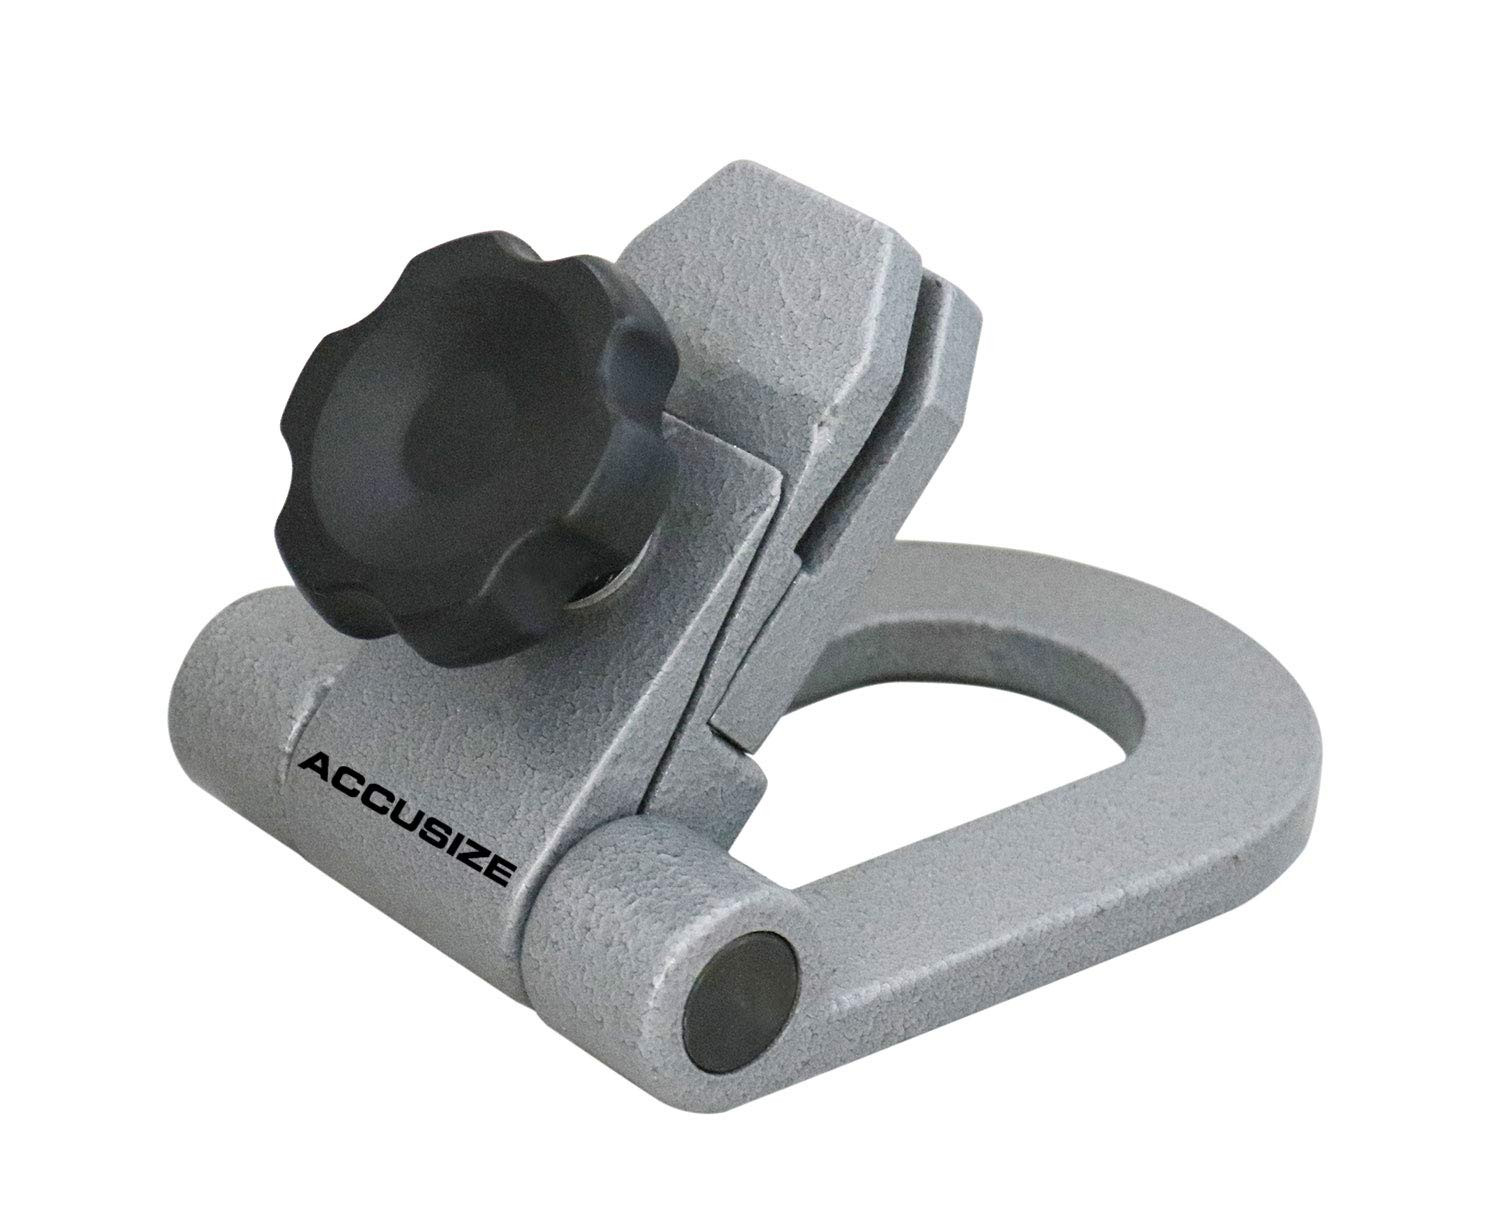 Accusize Industrial Tools Micrometer Stand, S907-C153